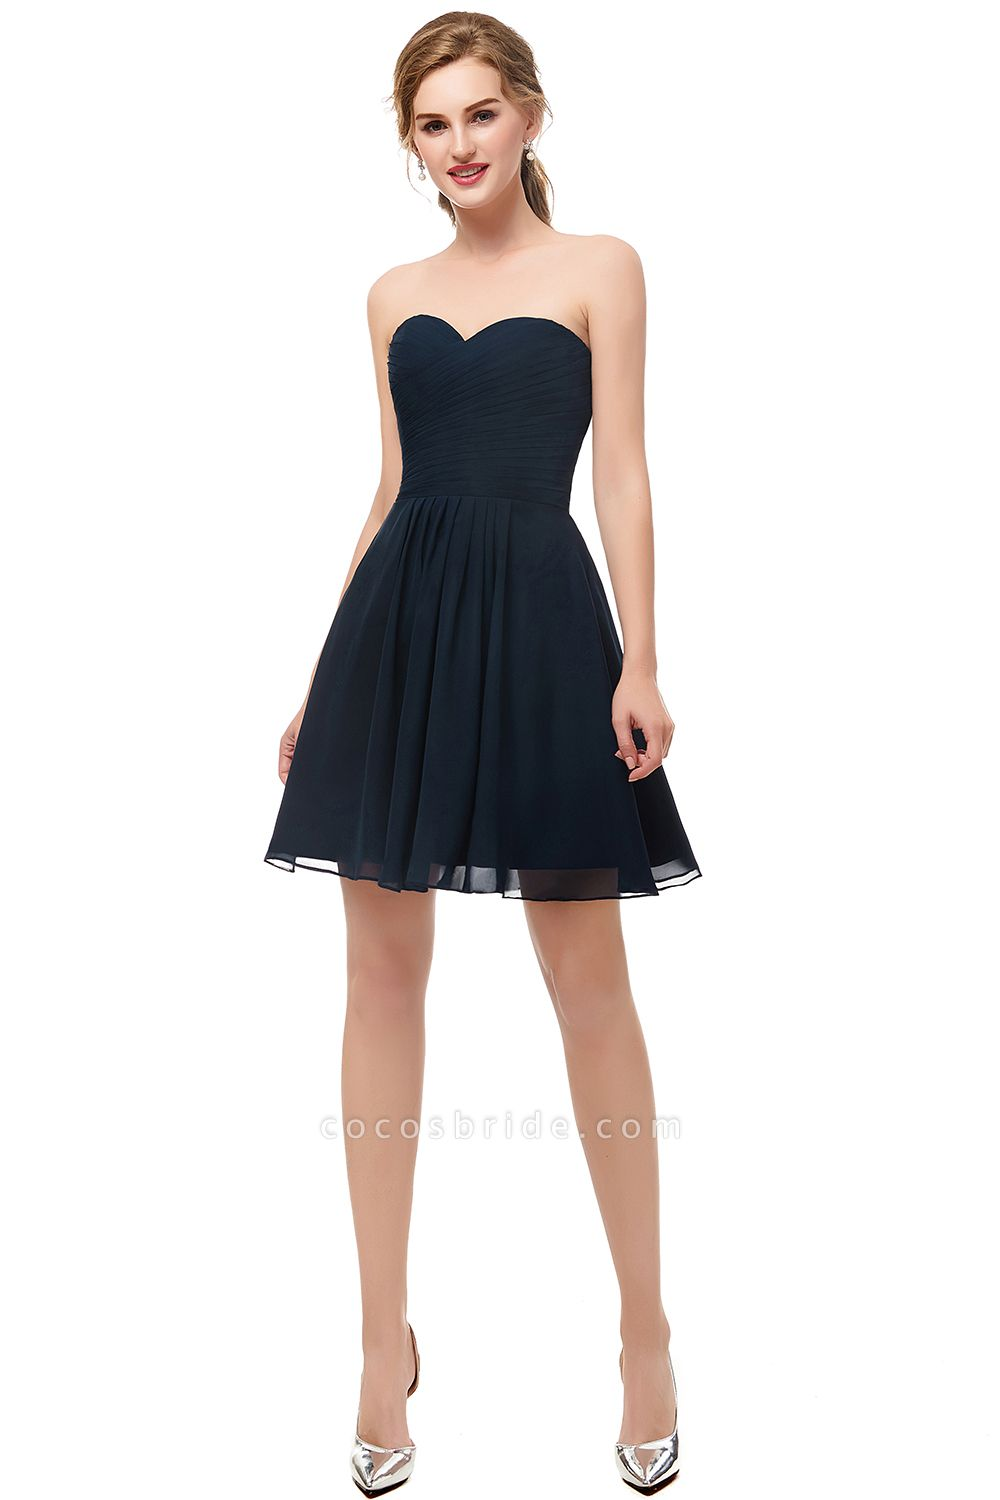 Fascinating Sweetheart Chiffon A-line Homecoming Dress